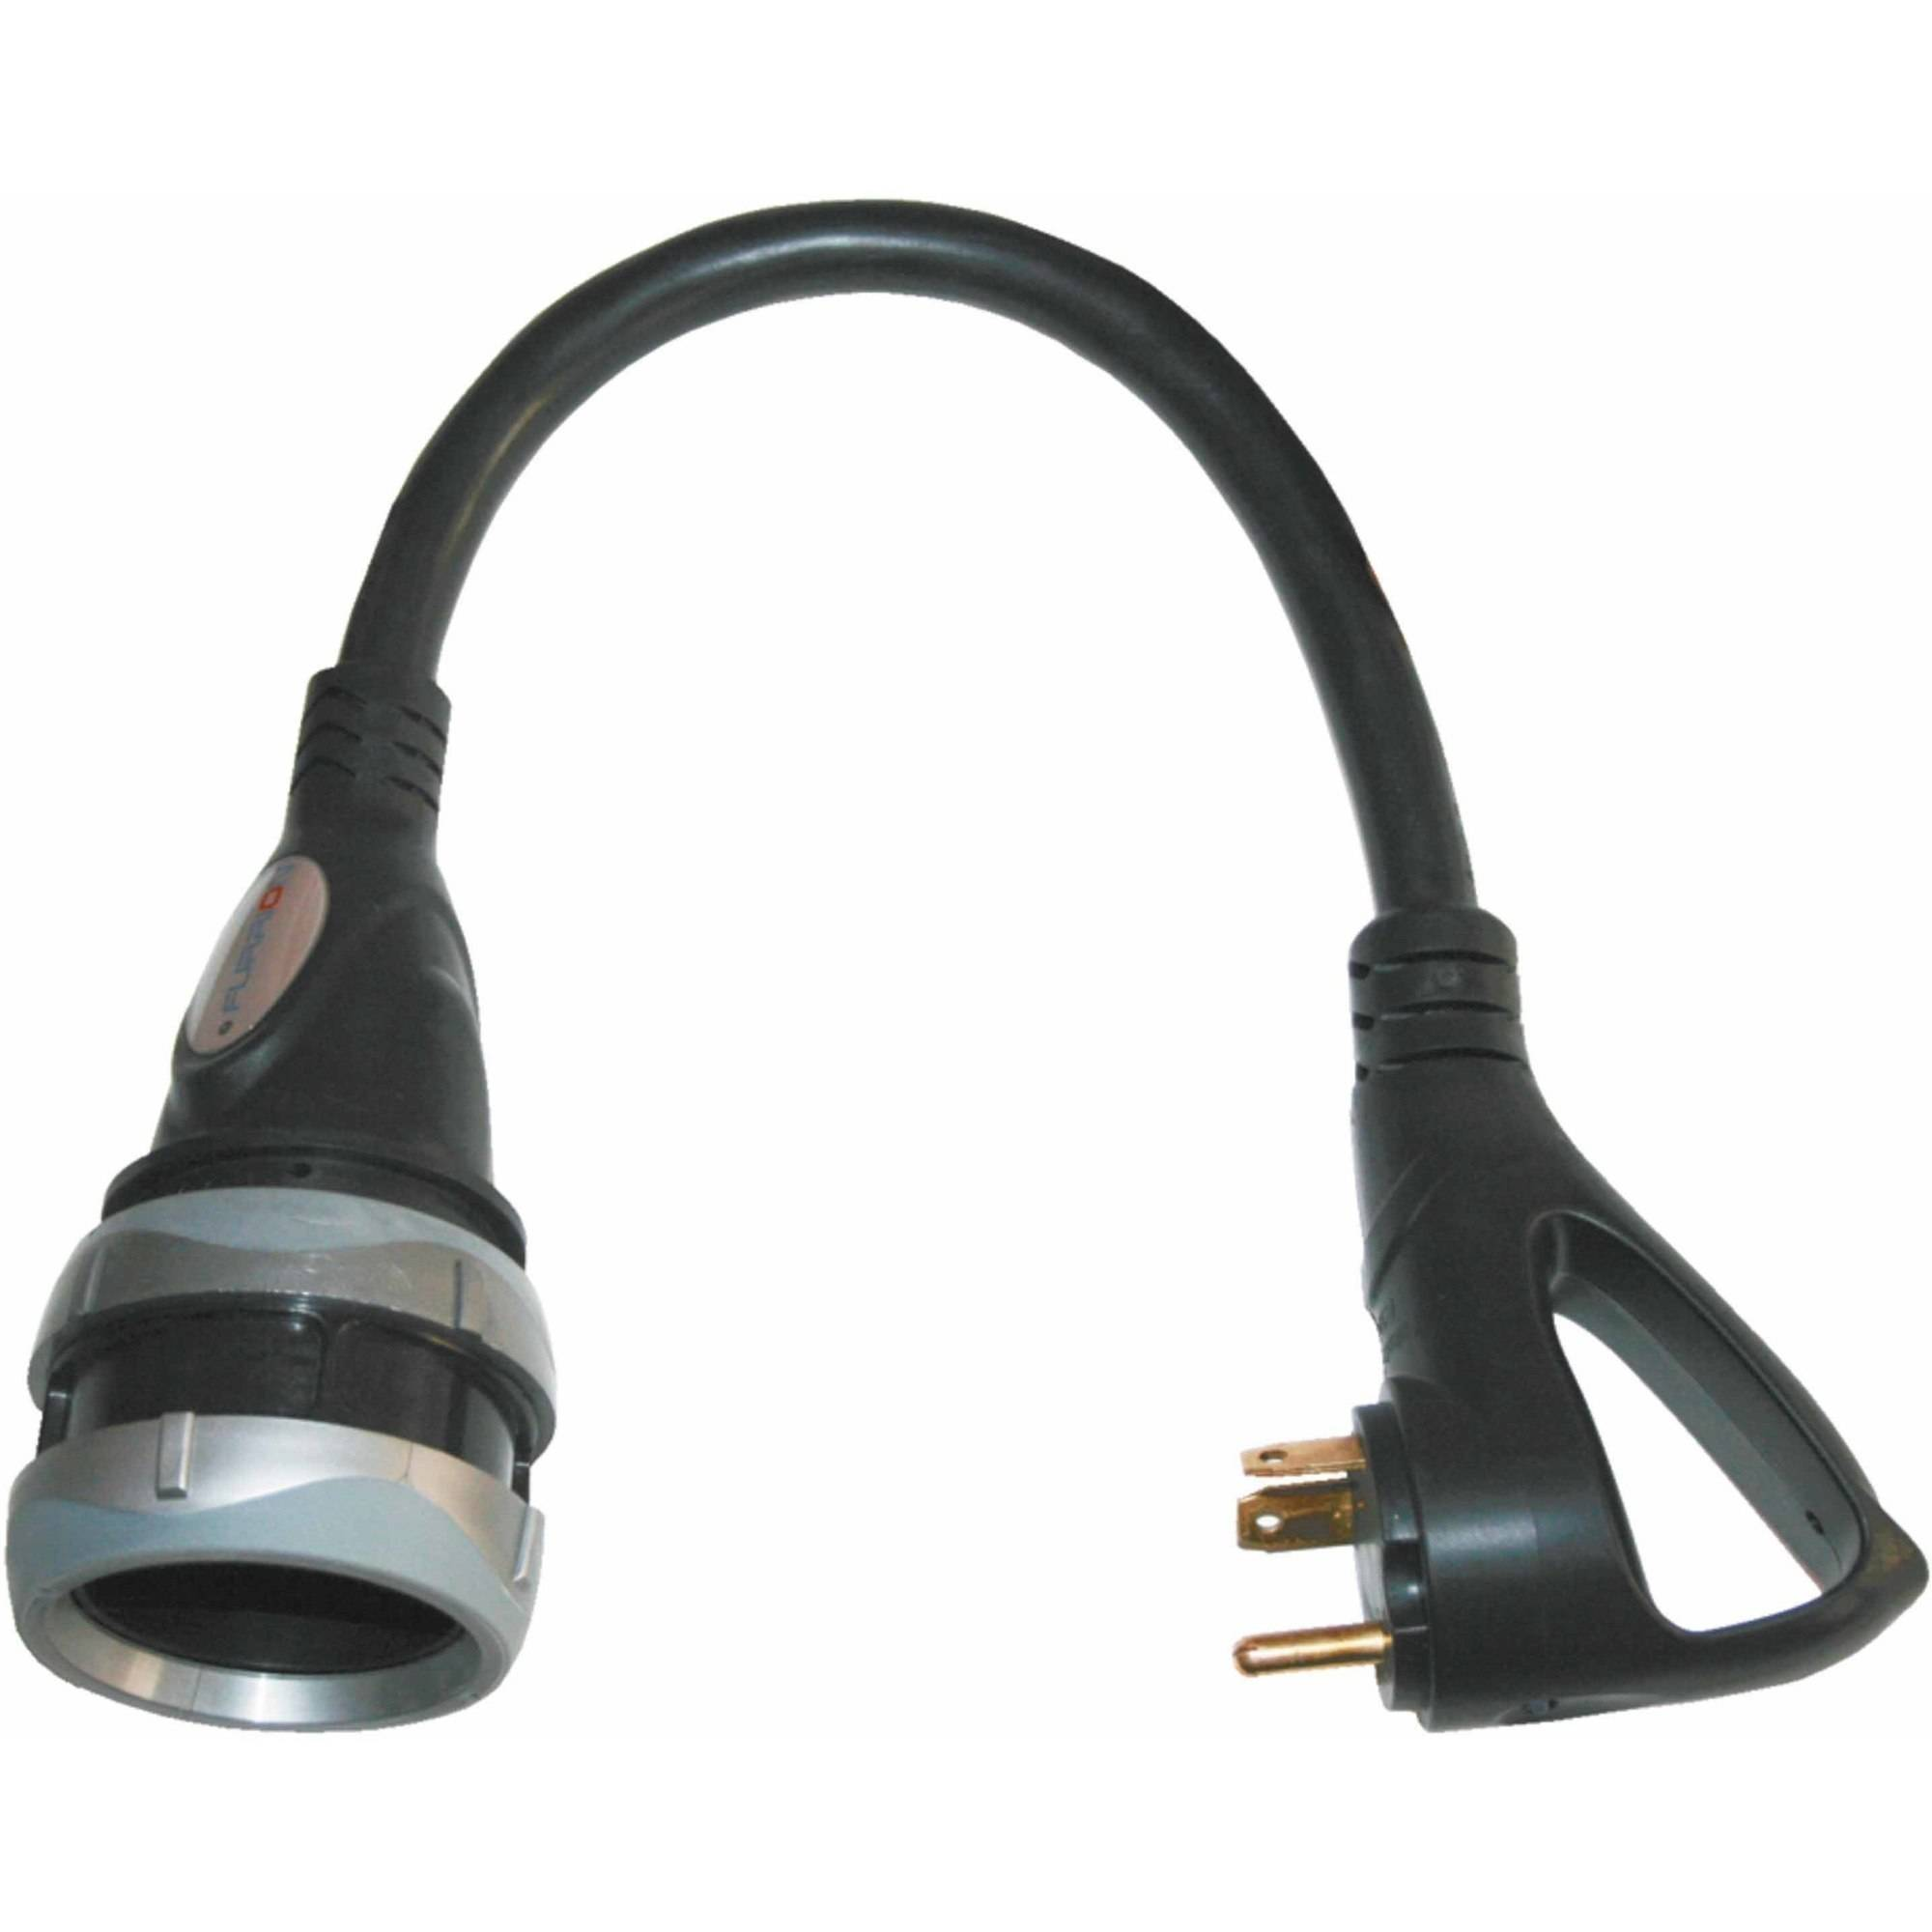 Furrion 50 Amp 125/250V Locking (F) To 30 AMP RV (M) Pigtail Adapter with Faultsmart LED, Black